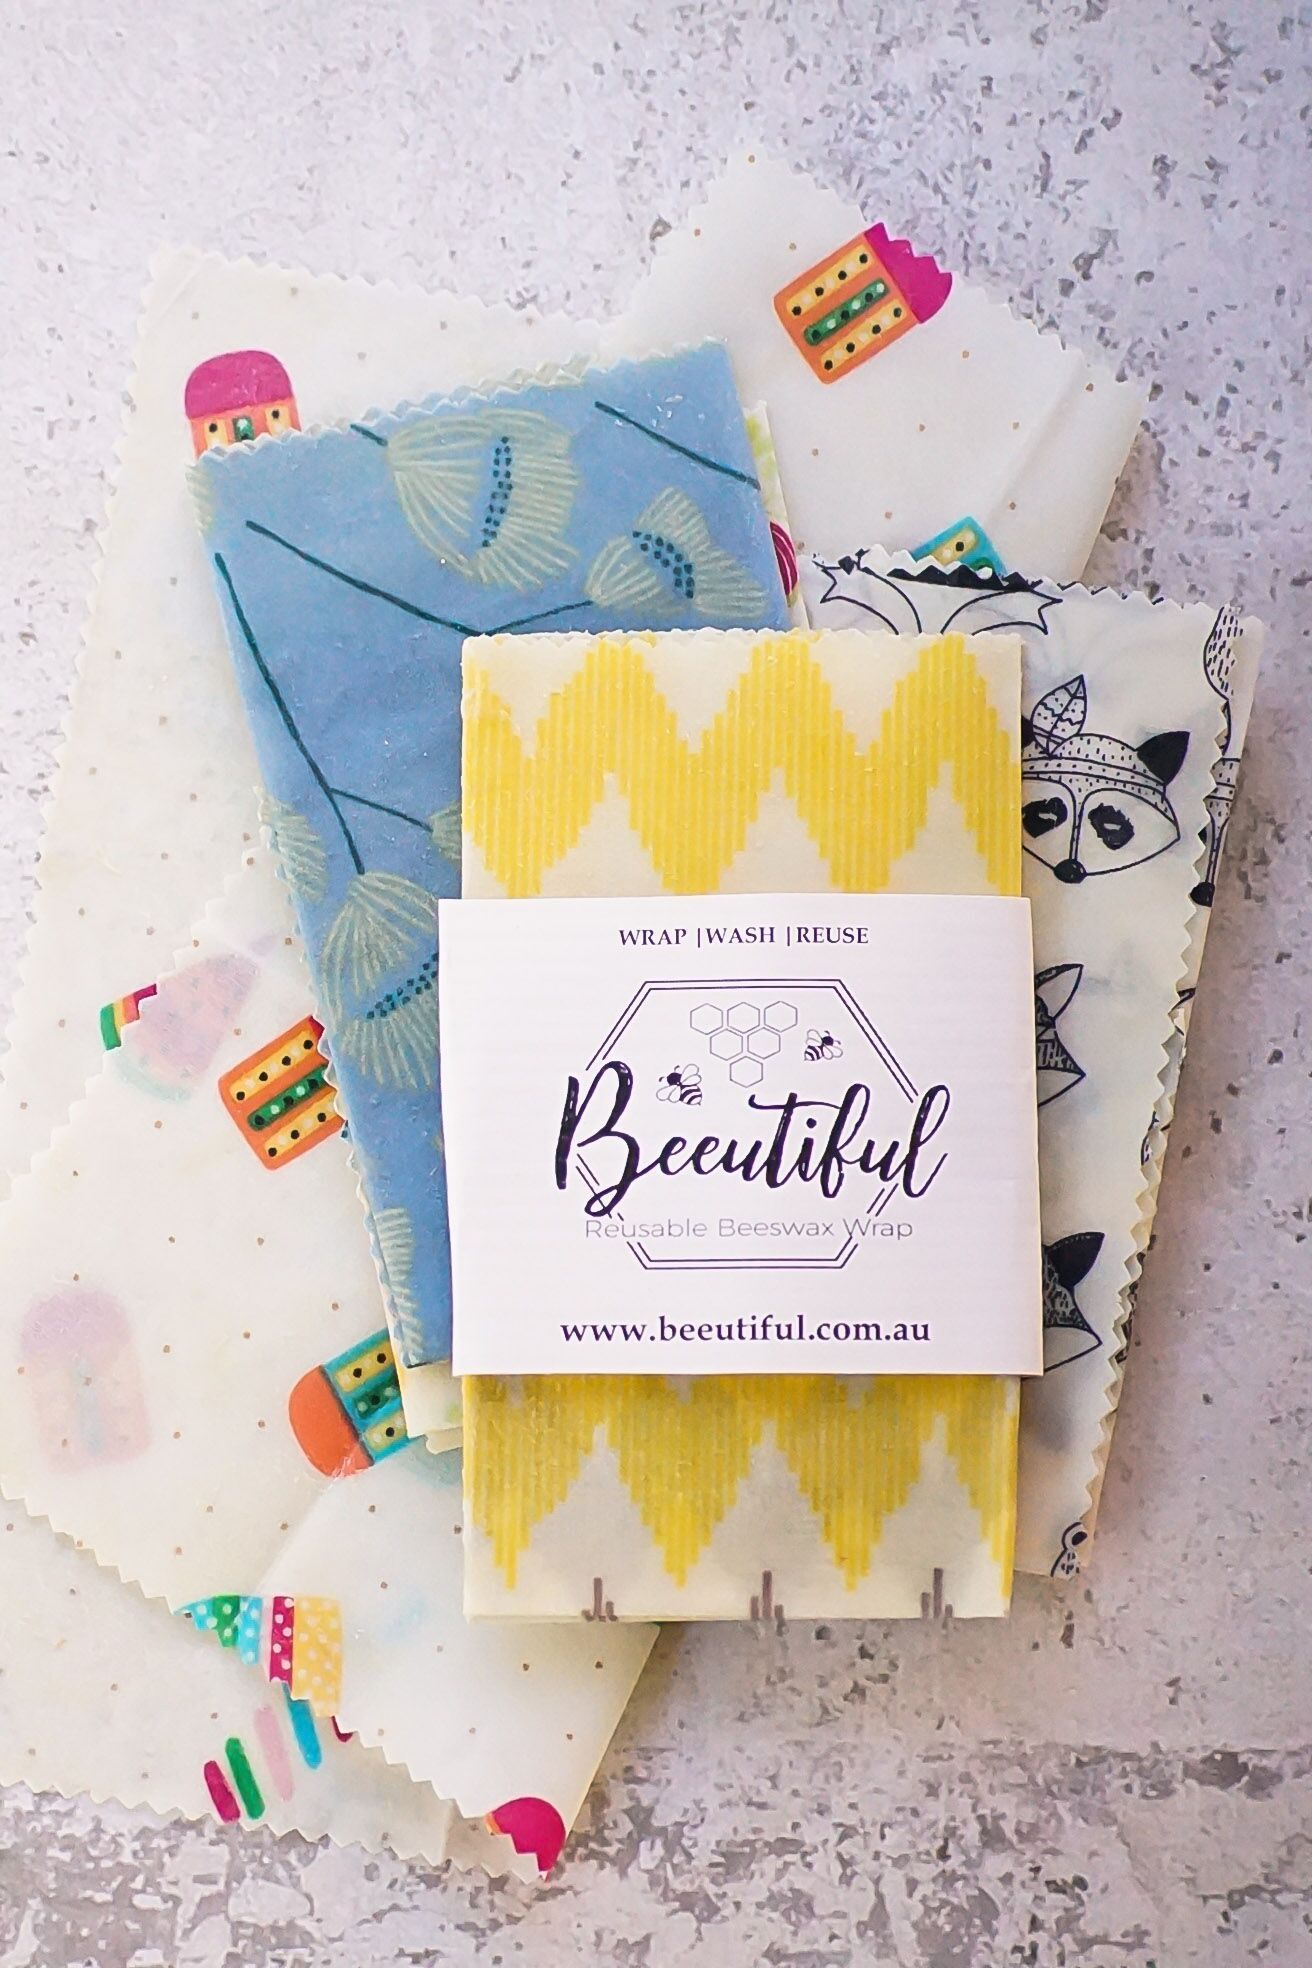 BEEUTIFUL Beeswax Wraps | The Beeutiful Pack 4 Pack